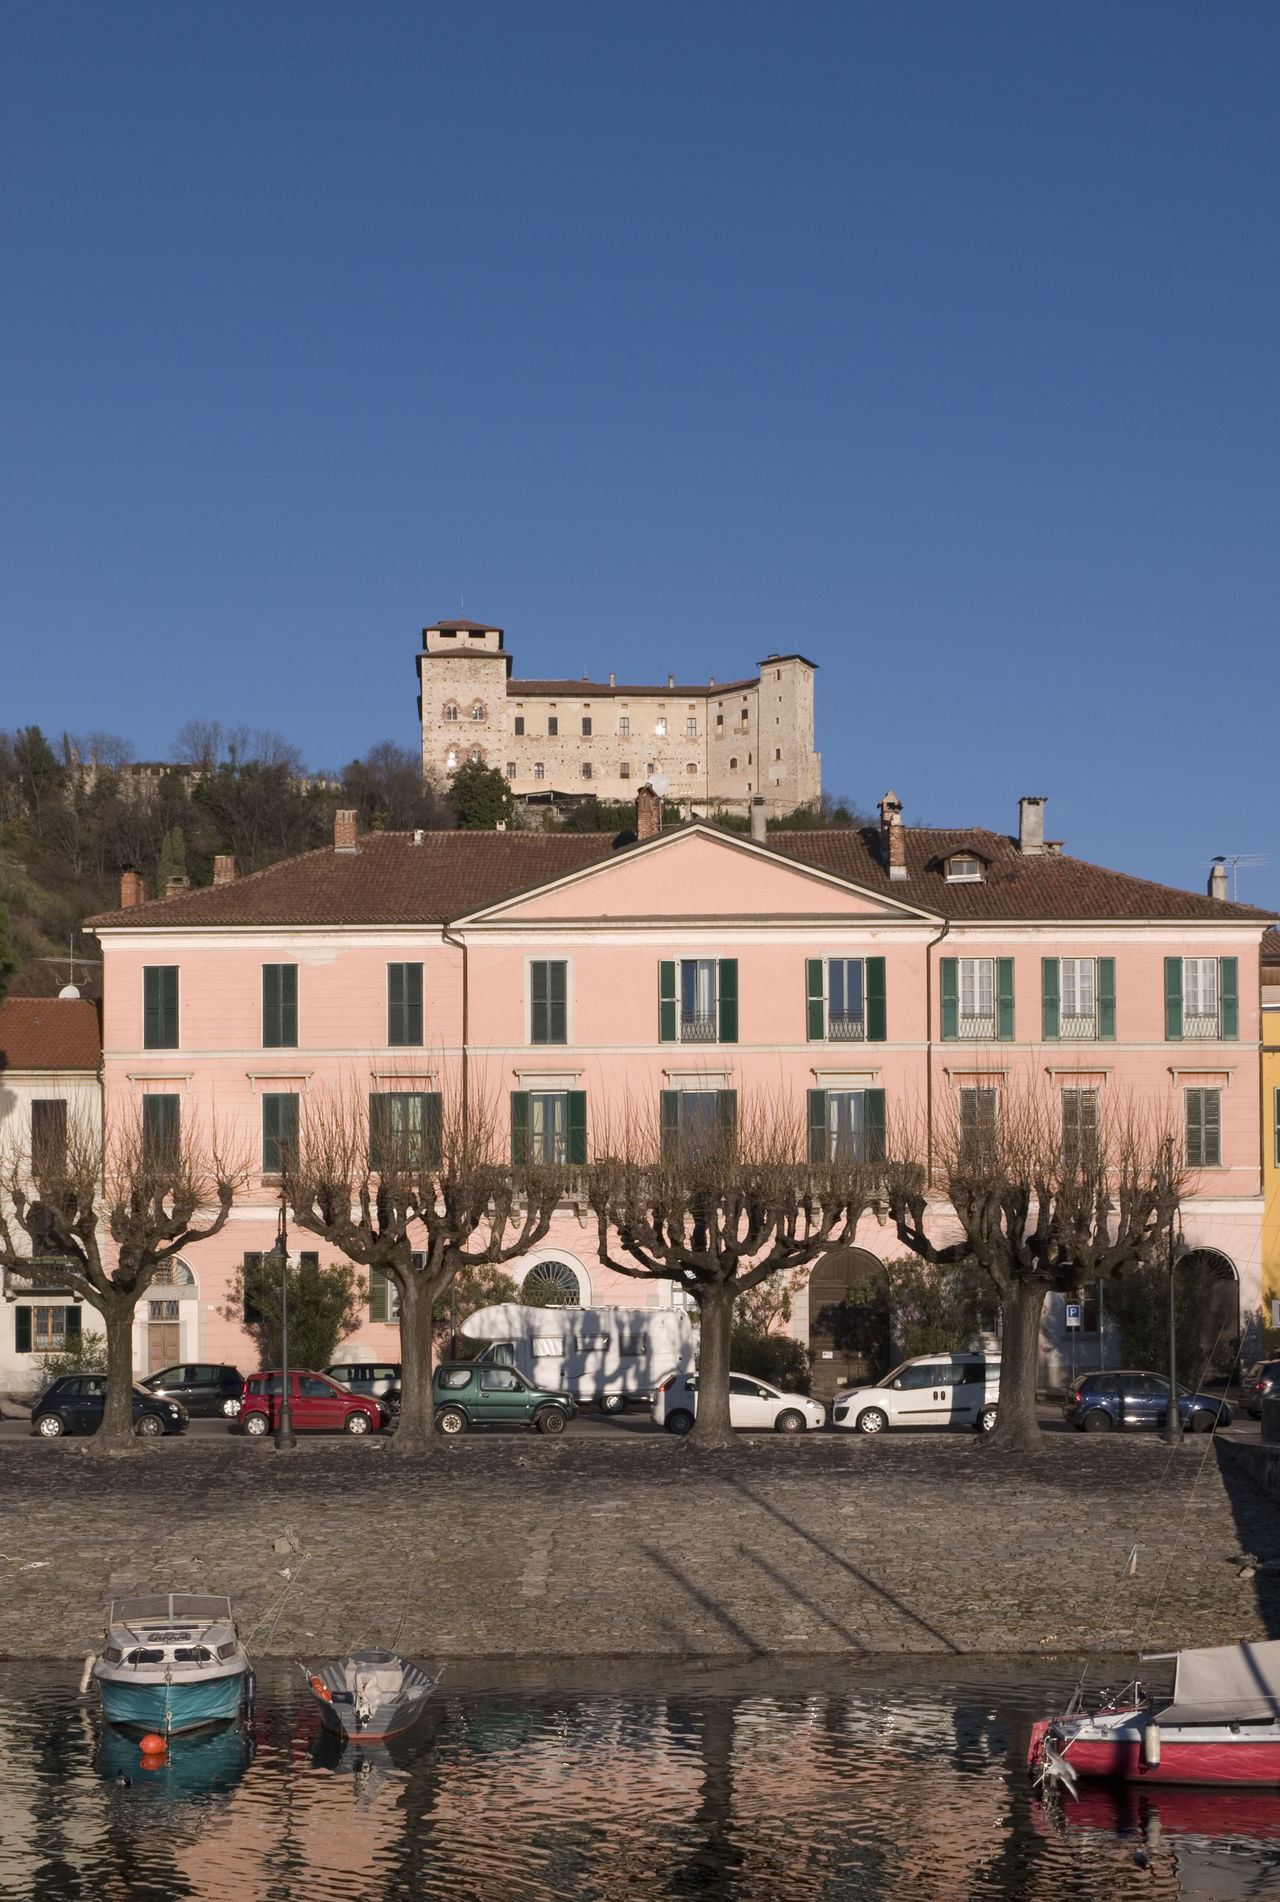 the town of Angera with Rocca Borromea on hilltop, Lake Maggiore, Lombardy, Italy Angera Architecture Building Exterior Day Europe Fortress Italy Lake Maggiore Lakeshore Lakeside Lombardy No People Rocca Rocca Borromea Town Travel Vertical